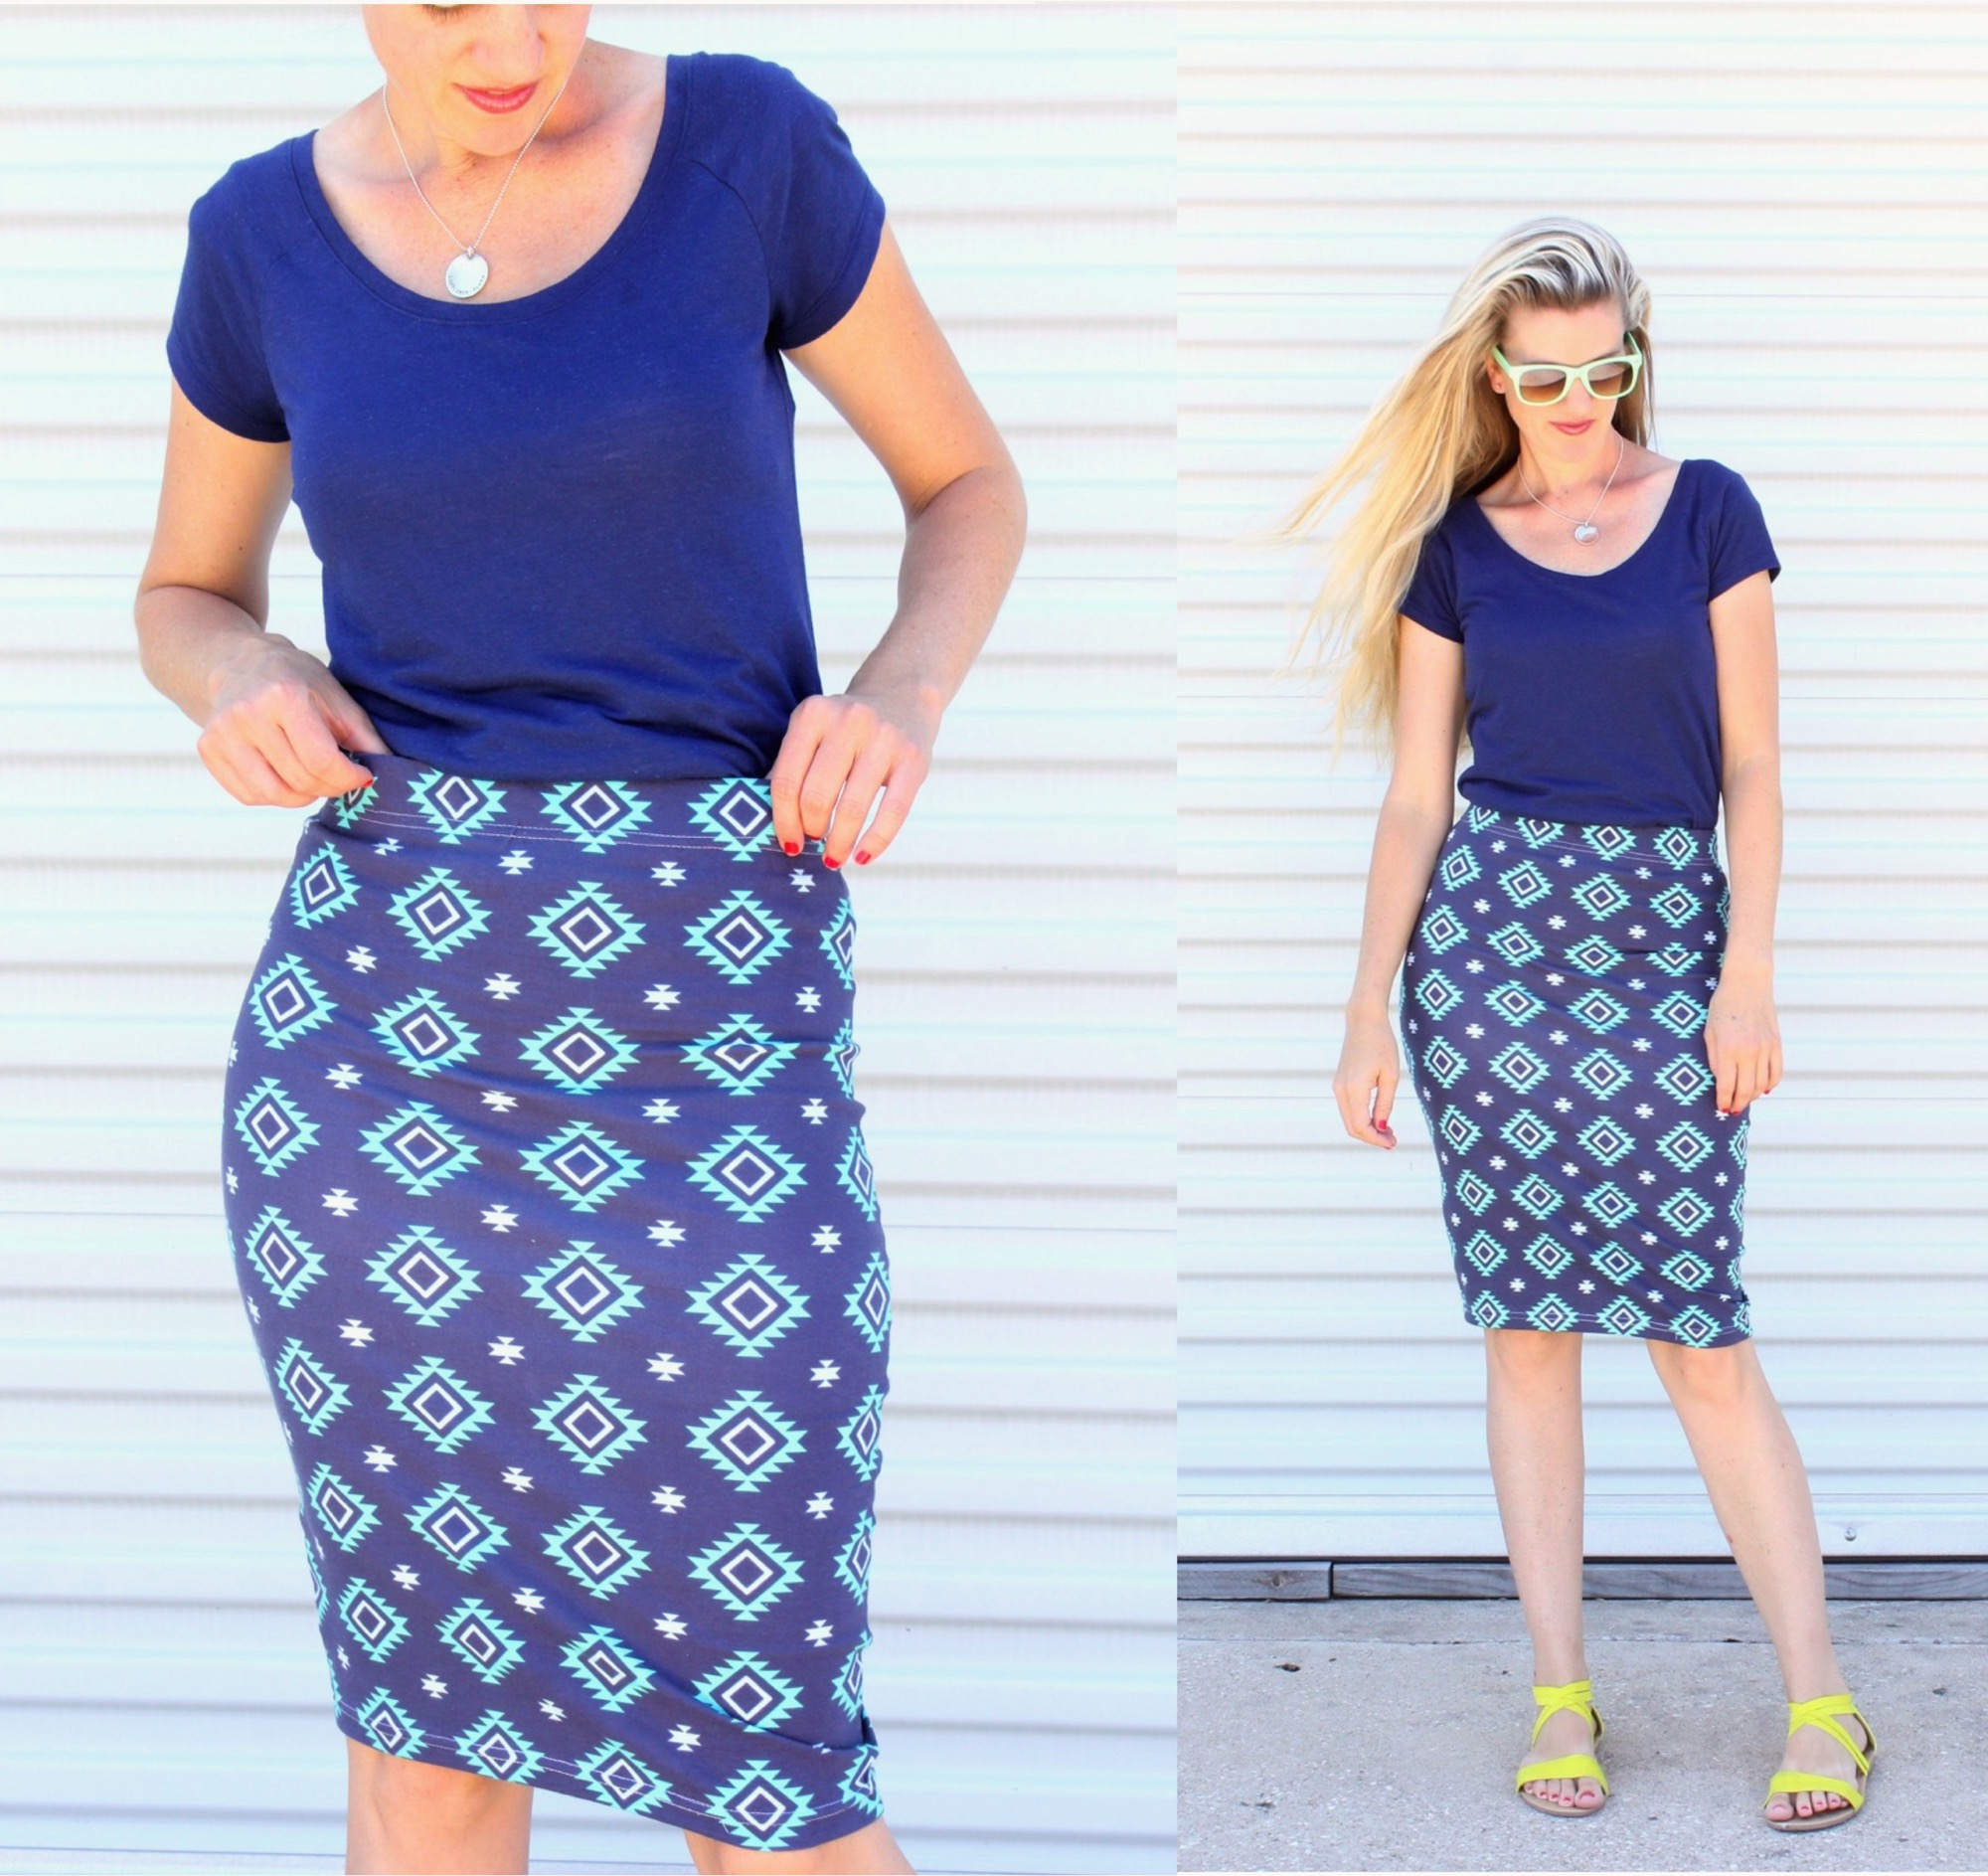 5a9d3fbaba8a my new pencil skirt + 60 skirts for girls in foster care – MADE EVERYDAY